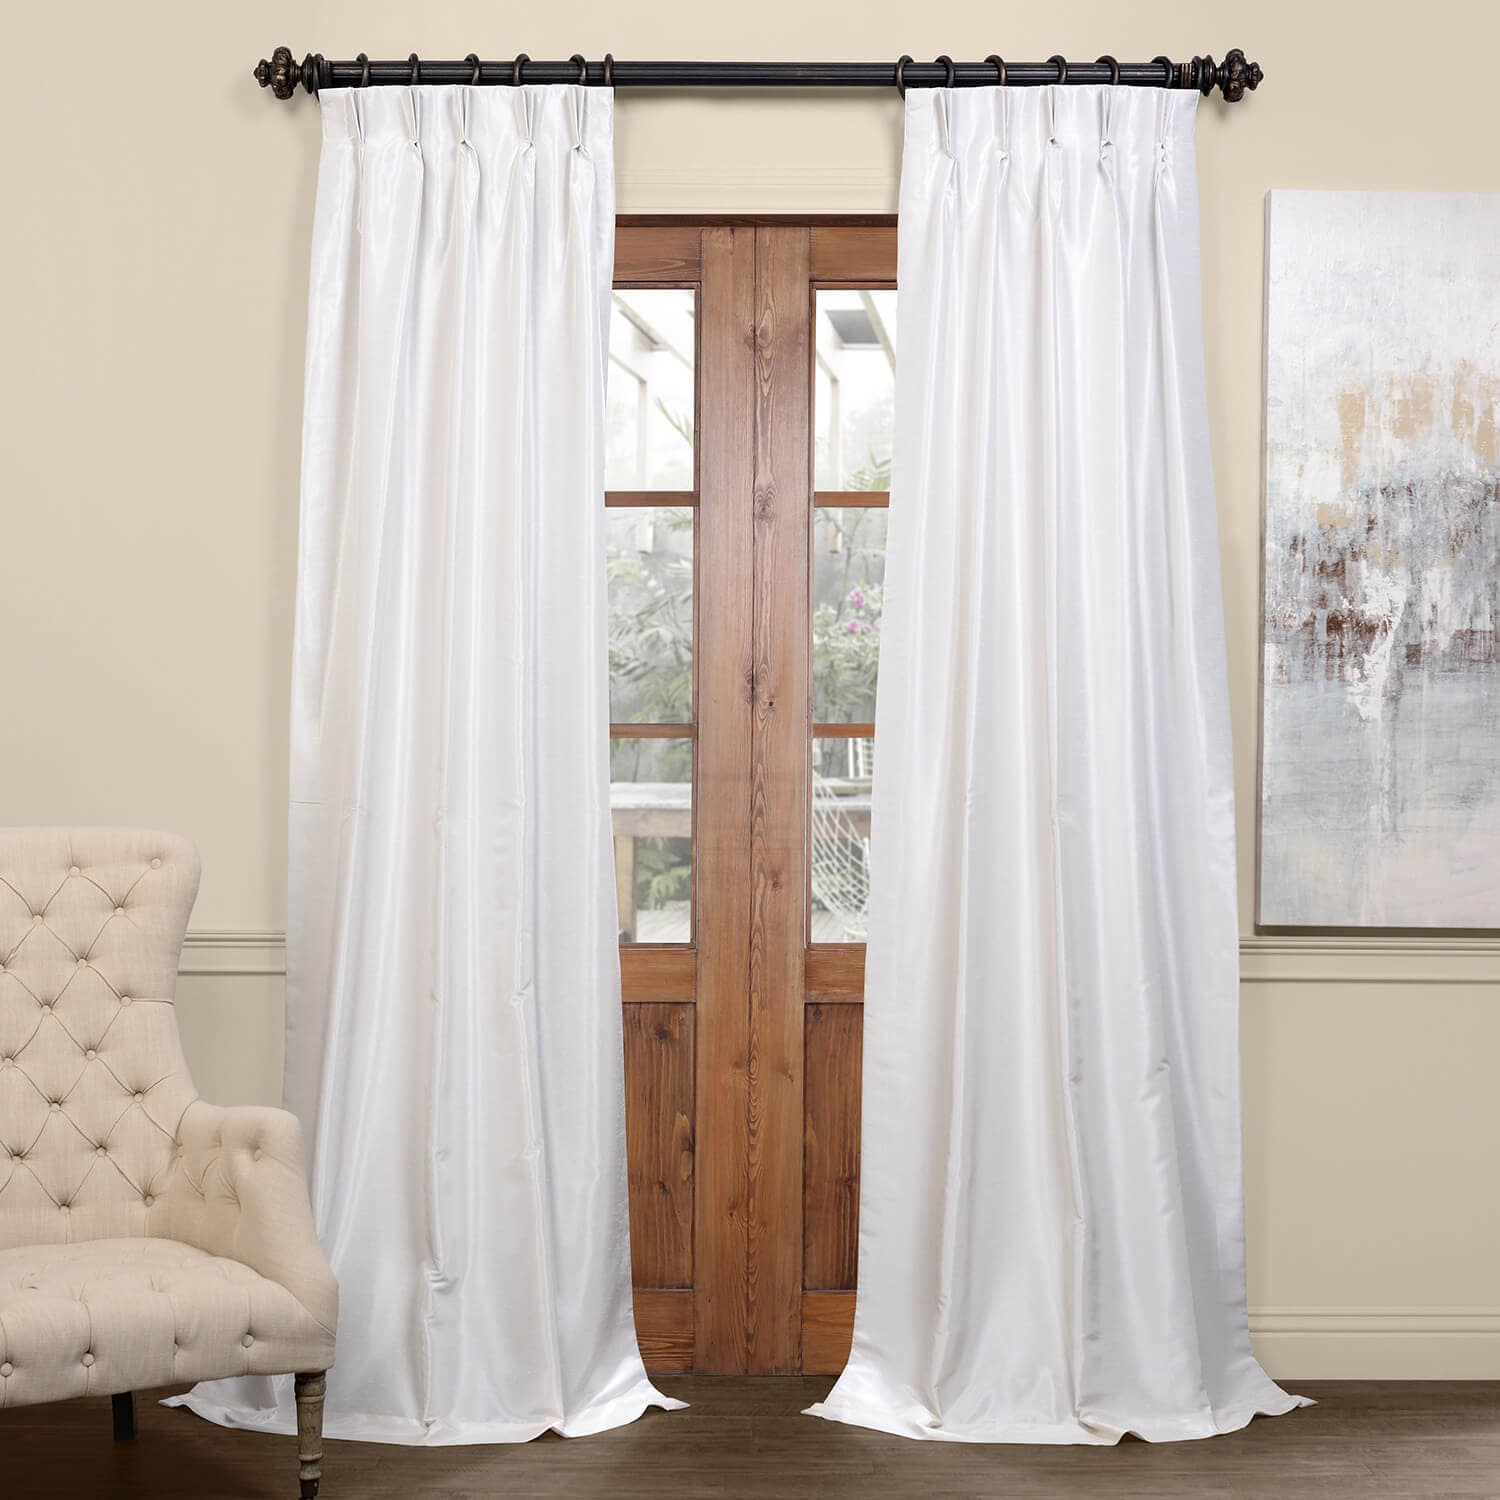 Off White Blackout Vintage Textured Faux Dupioni Pleated Curtain Inside Off White Vintage Faux Textured Silk Curtains (View 4 of 20)